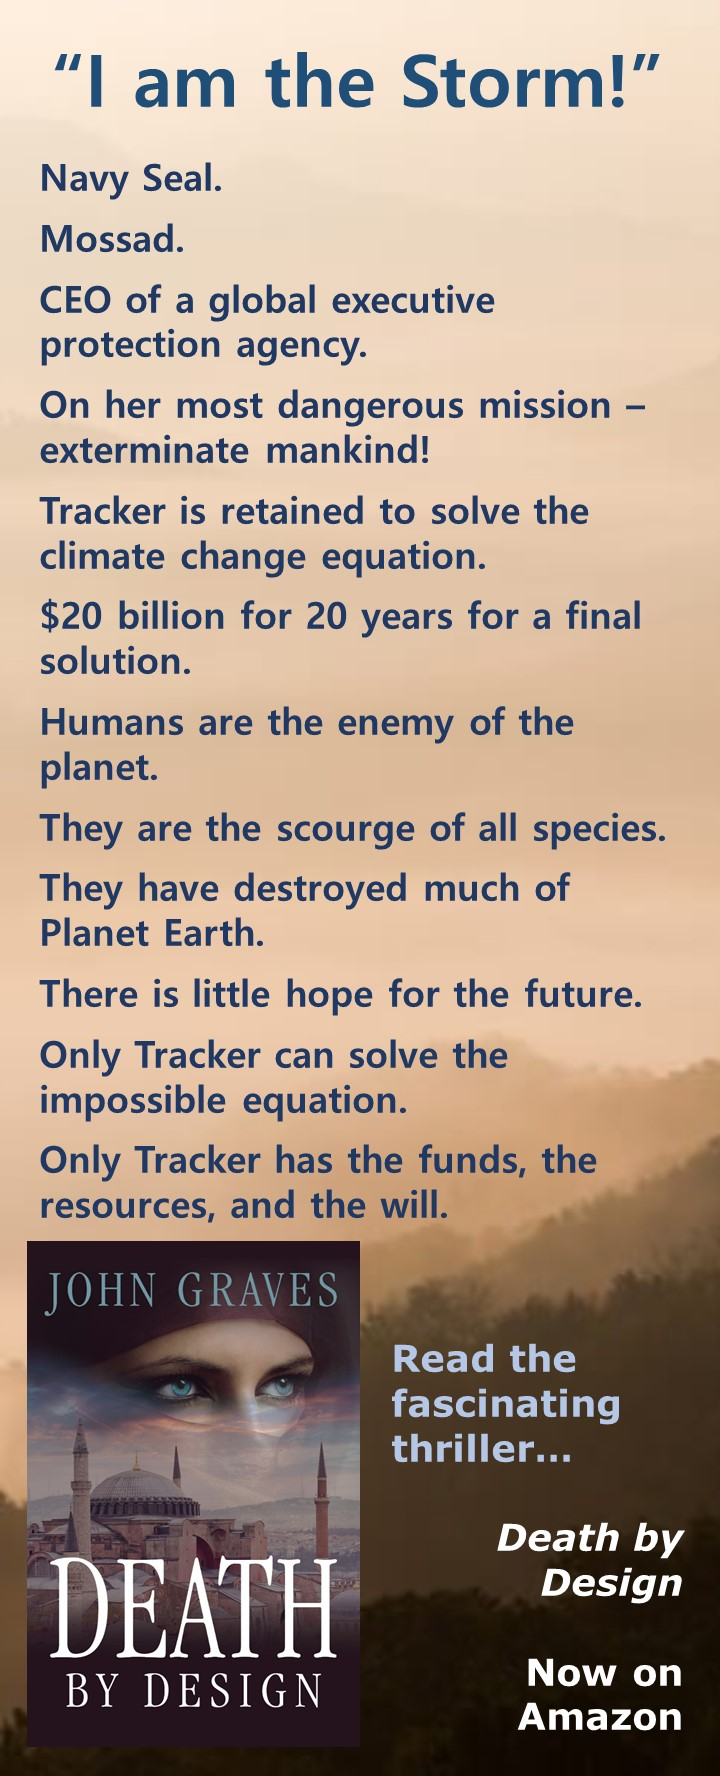 I Am the Storm - They have destroyed much of Planet Earth. There is little hope for the future. Only Tracker can solve the impossible equation. Only Tracker has the funds, the resources, and the will.